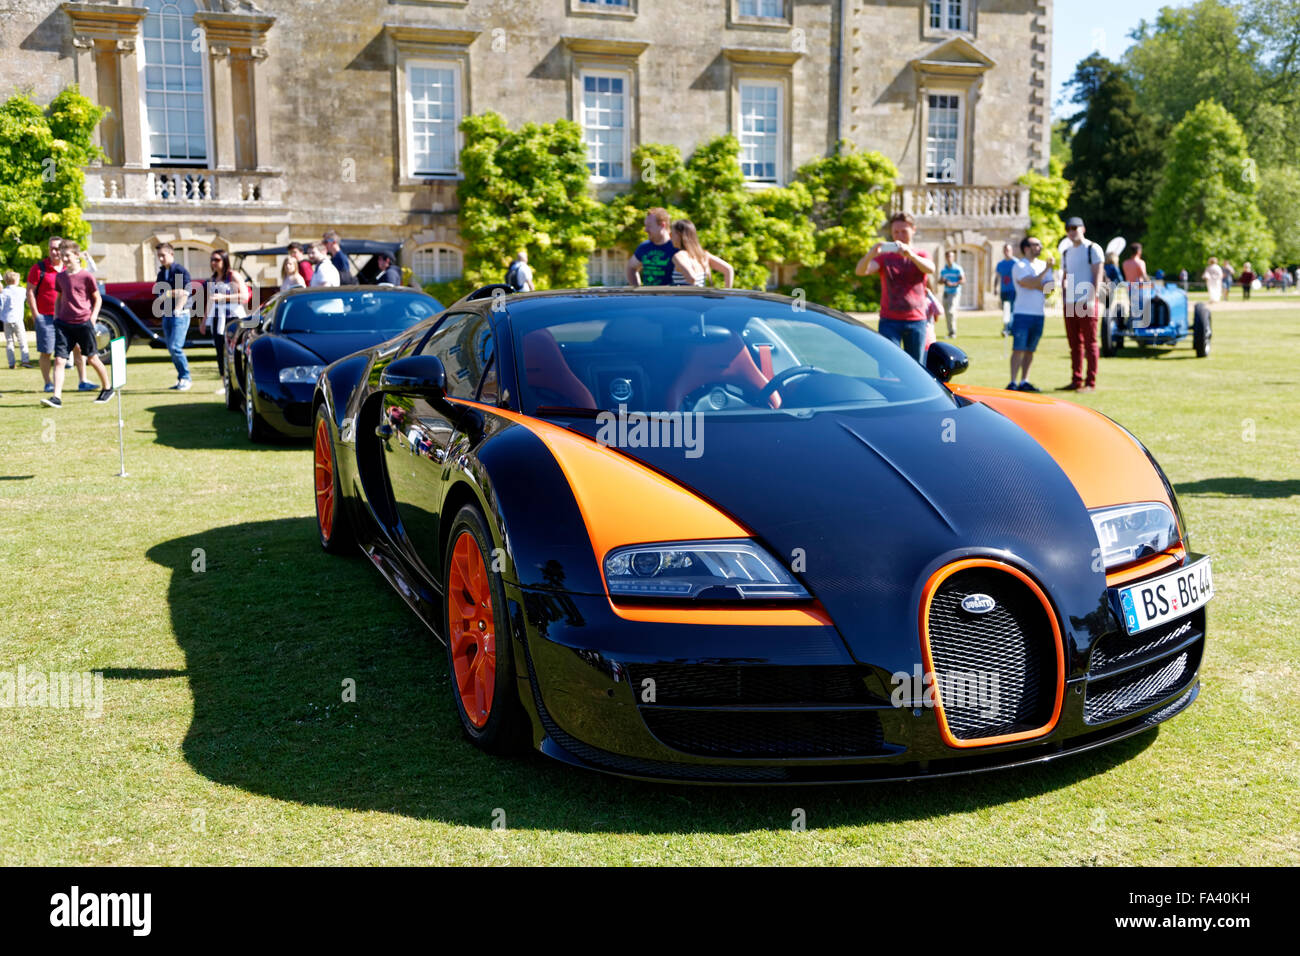 A Bugatti Veyron Sports car at the Wilton House Classic & Supercar Show, Wiltshire, United Kingdom, 2015. - Stock Image